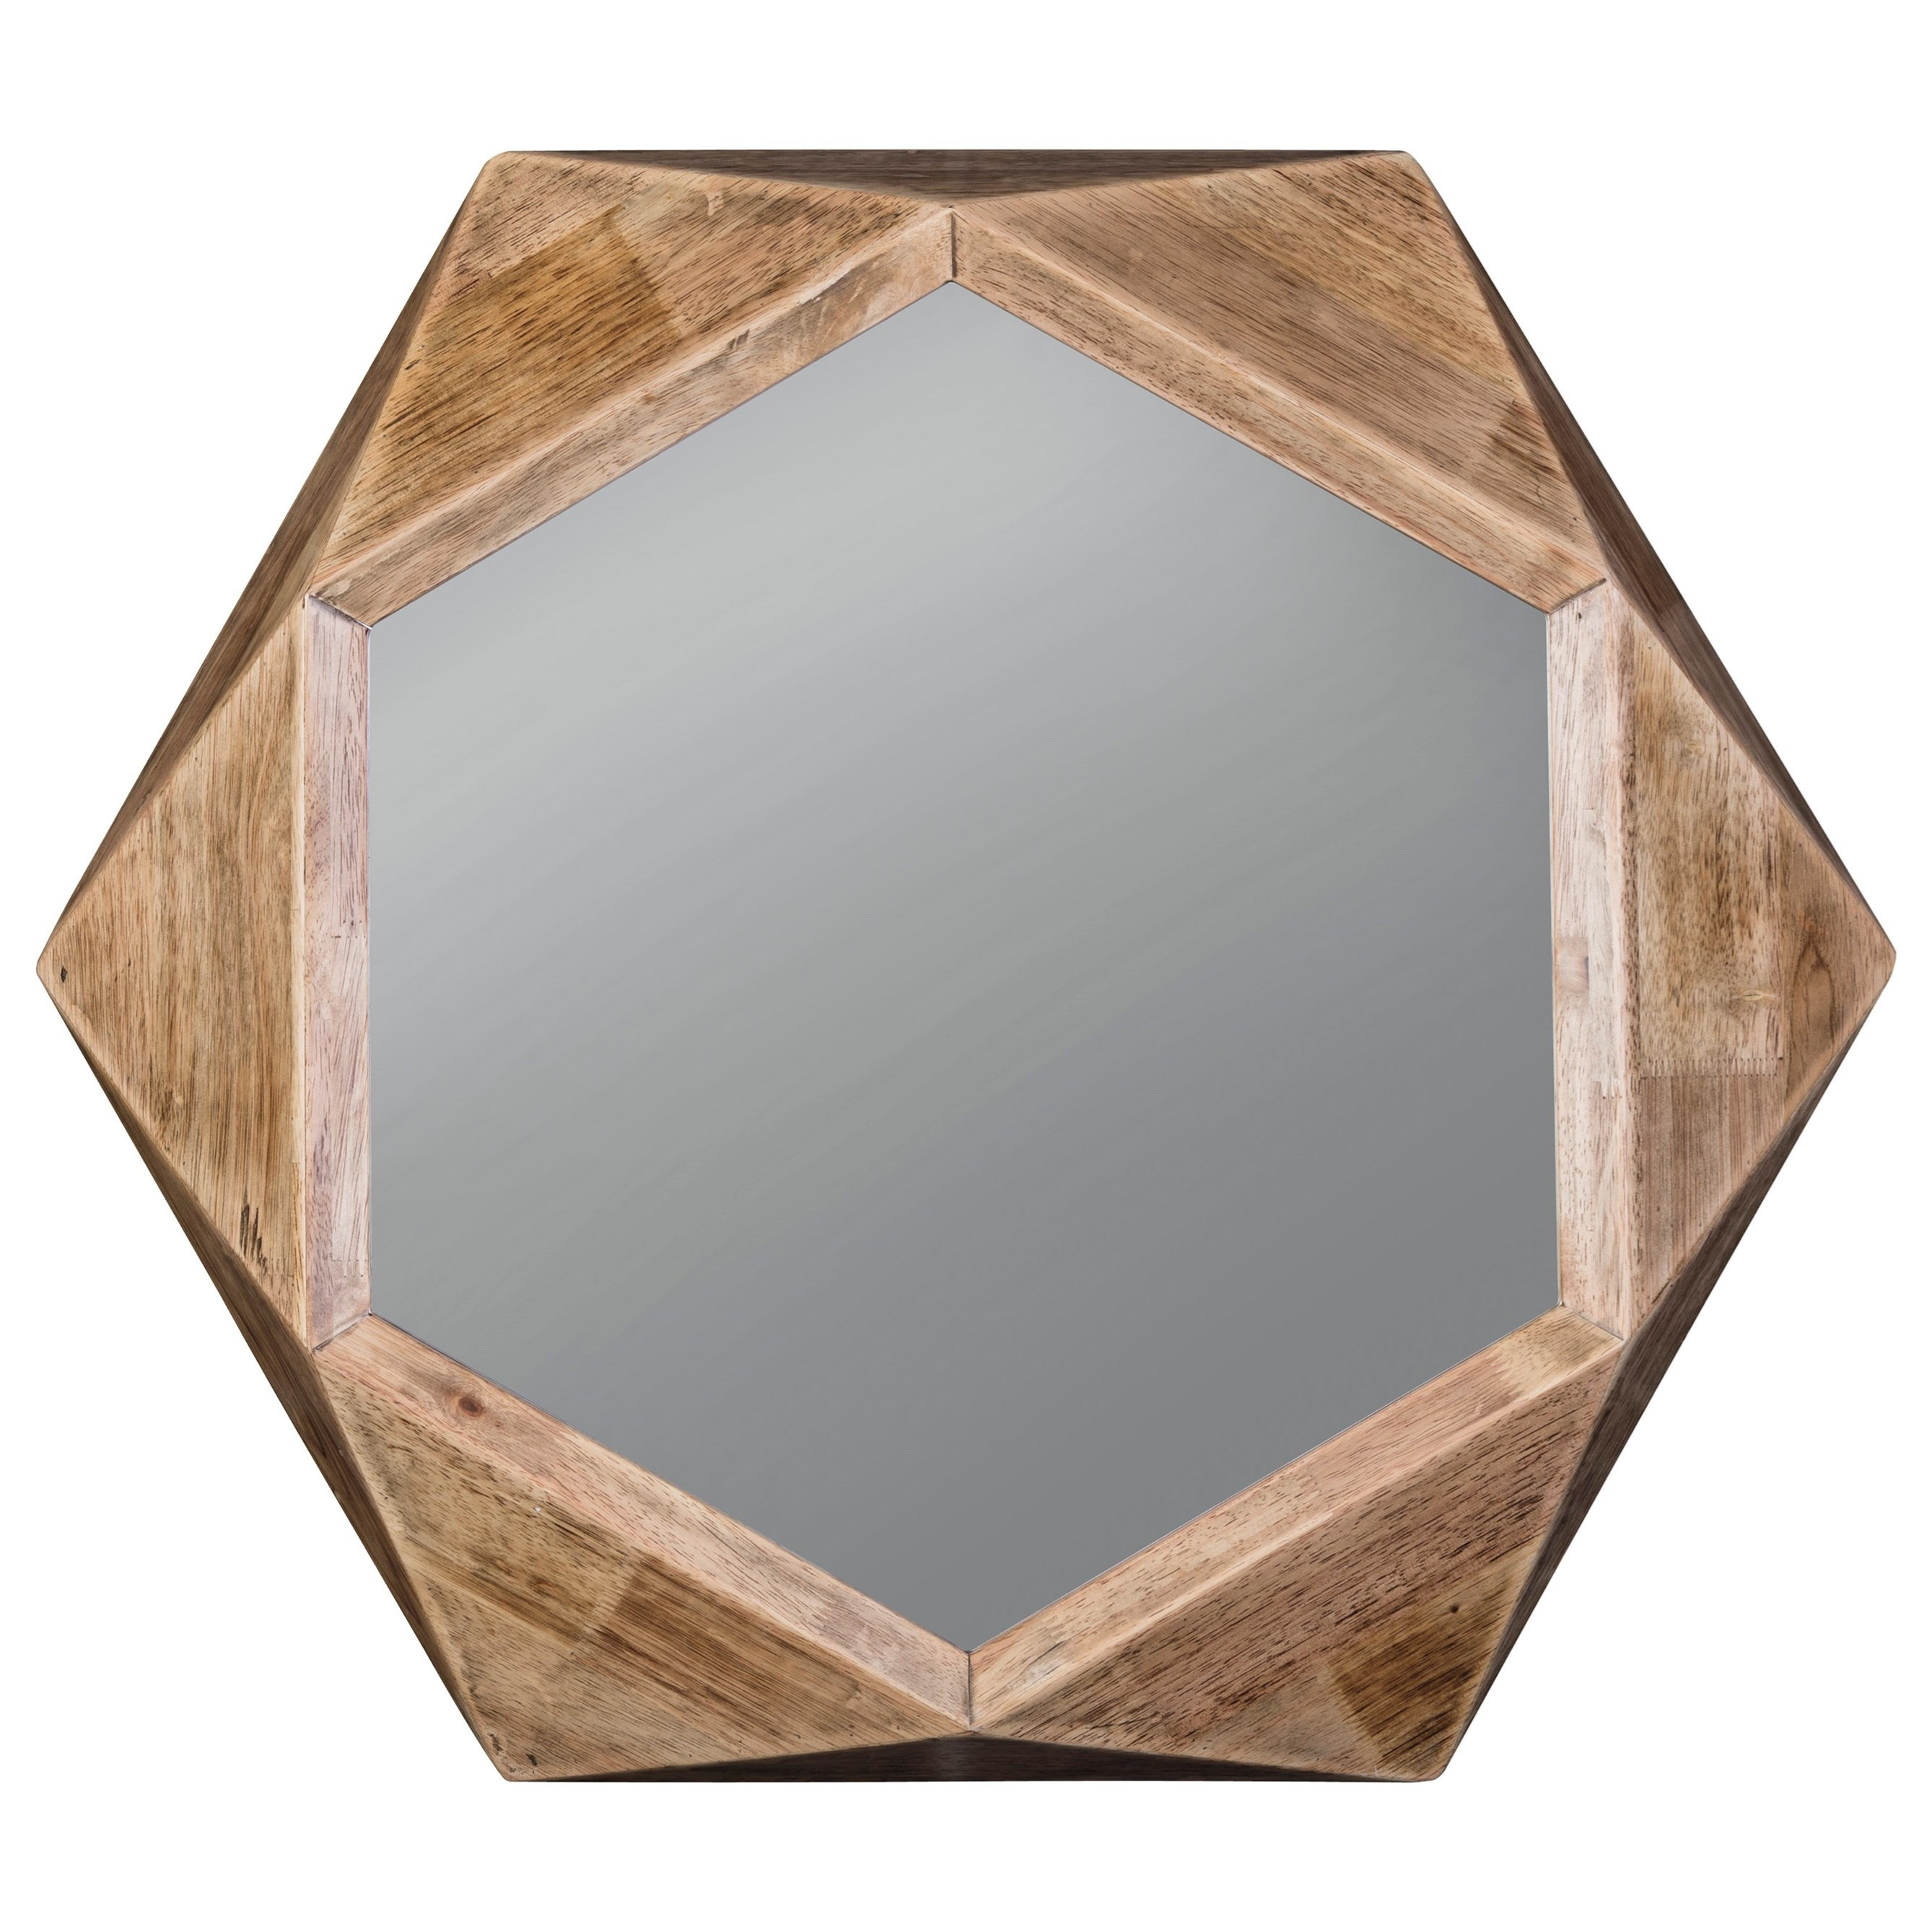 Accent Mirrors Corin Natural Accent Mirror by Signature Design at Fisher Home Furnishings